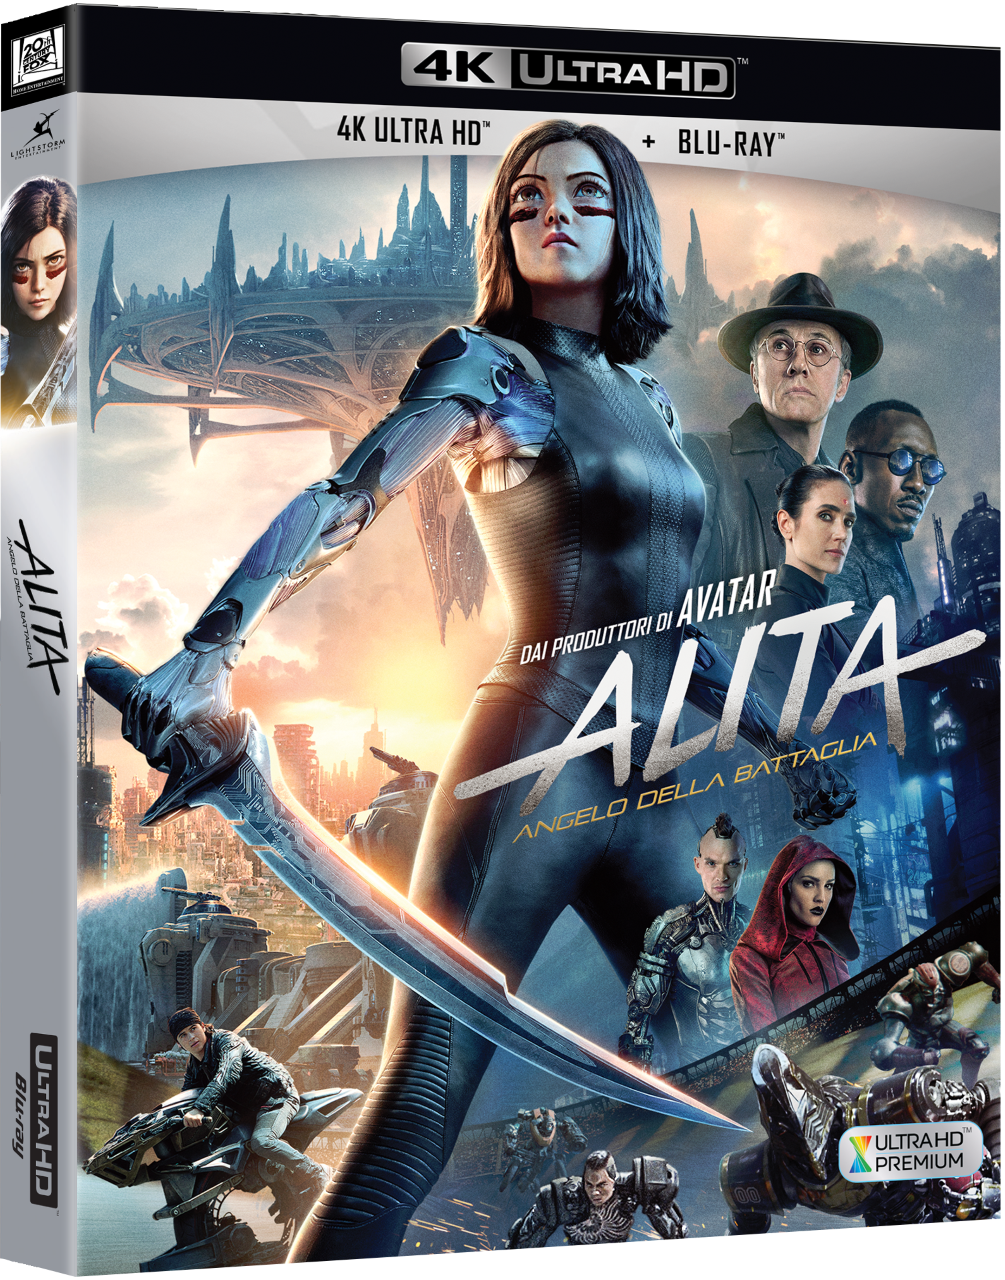 ALITA: ANGELO DELLA BATTAGLIA in Home Video in 4k con ore di contenuti speciali